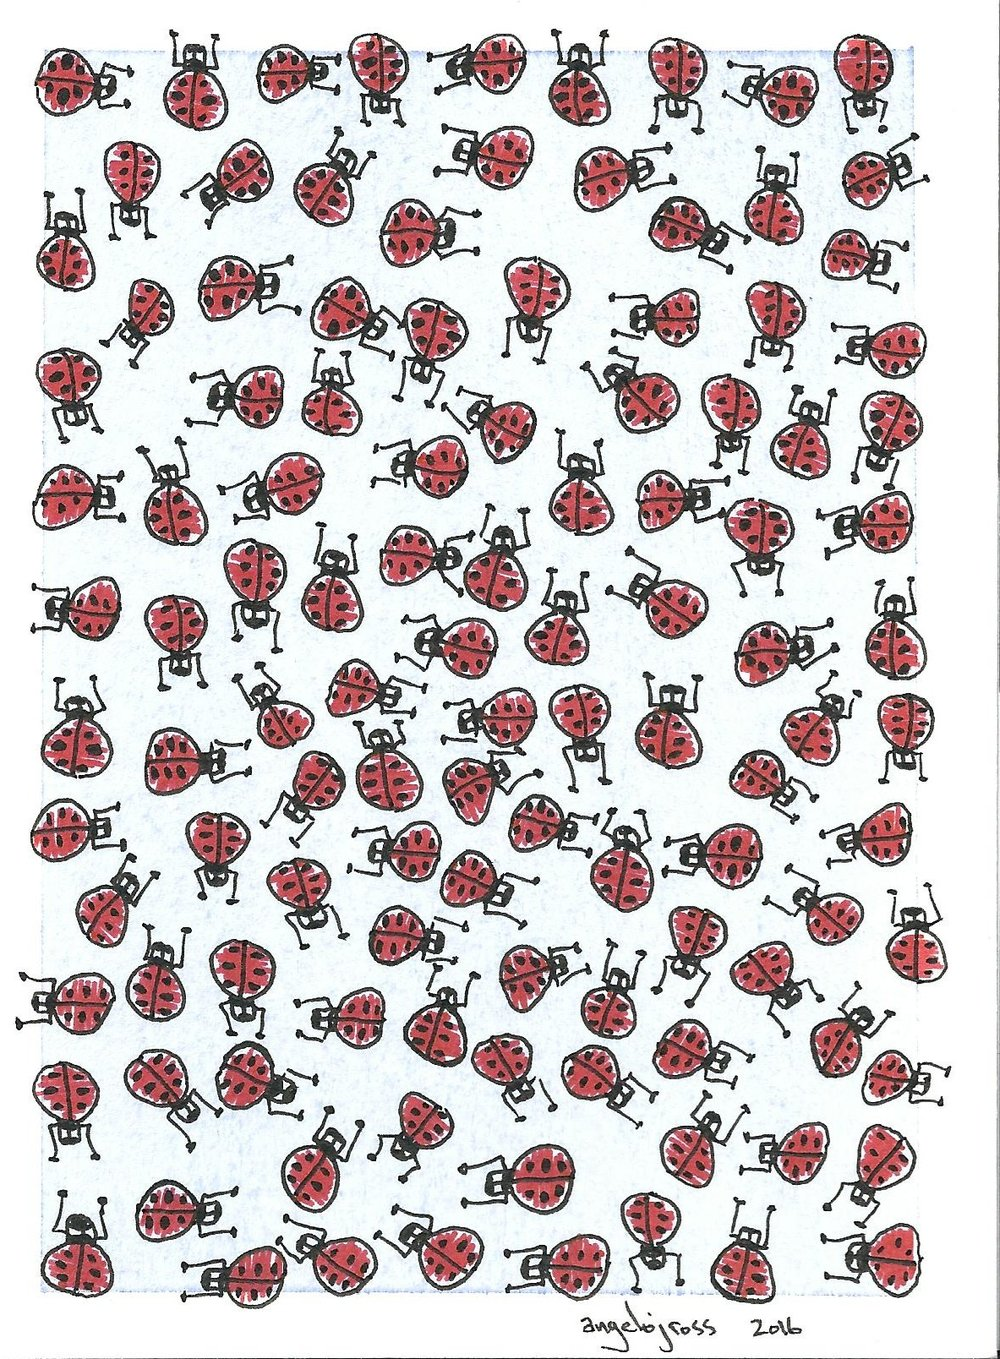 113 Bugs.  Pen and ink